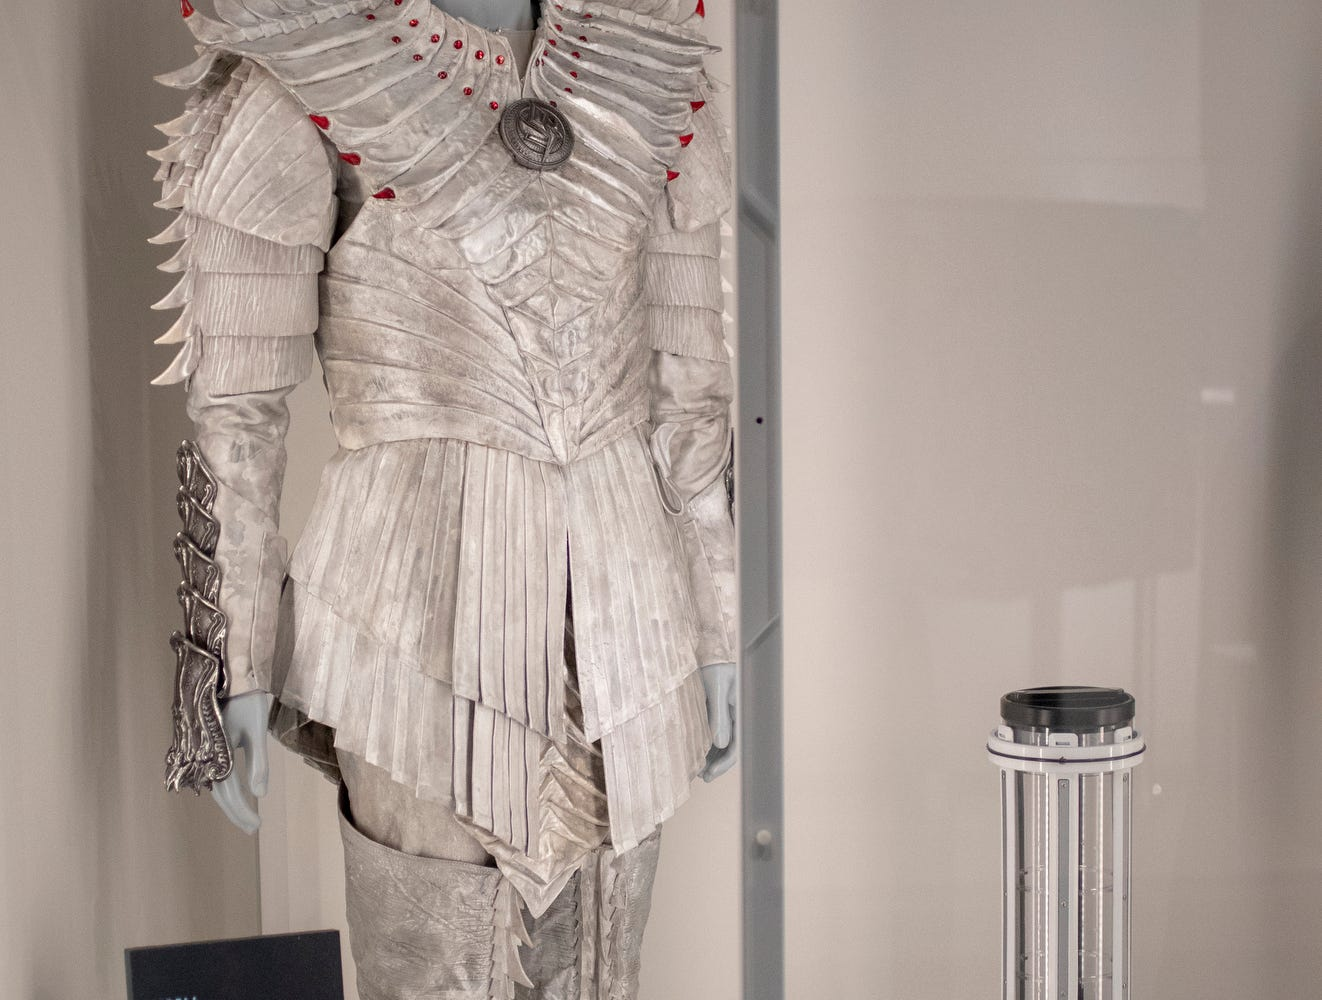 """An outfit worn by the Klingon character L'Rell from the franchise's current show, """"Star Trek: Discovery,"""" is seen at The Children's Museum of Indianapolis, Wednesday, Jan. 23, 2019. The """"Star Trek: Exploring New Worlds"""" exhibit is made up of set pieces, ship models and outfits used during various Star Trek shows and movies and is on display at the museum from Feb. 2 through April 7, 2019."""